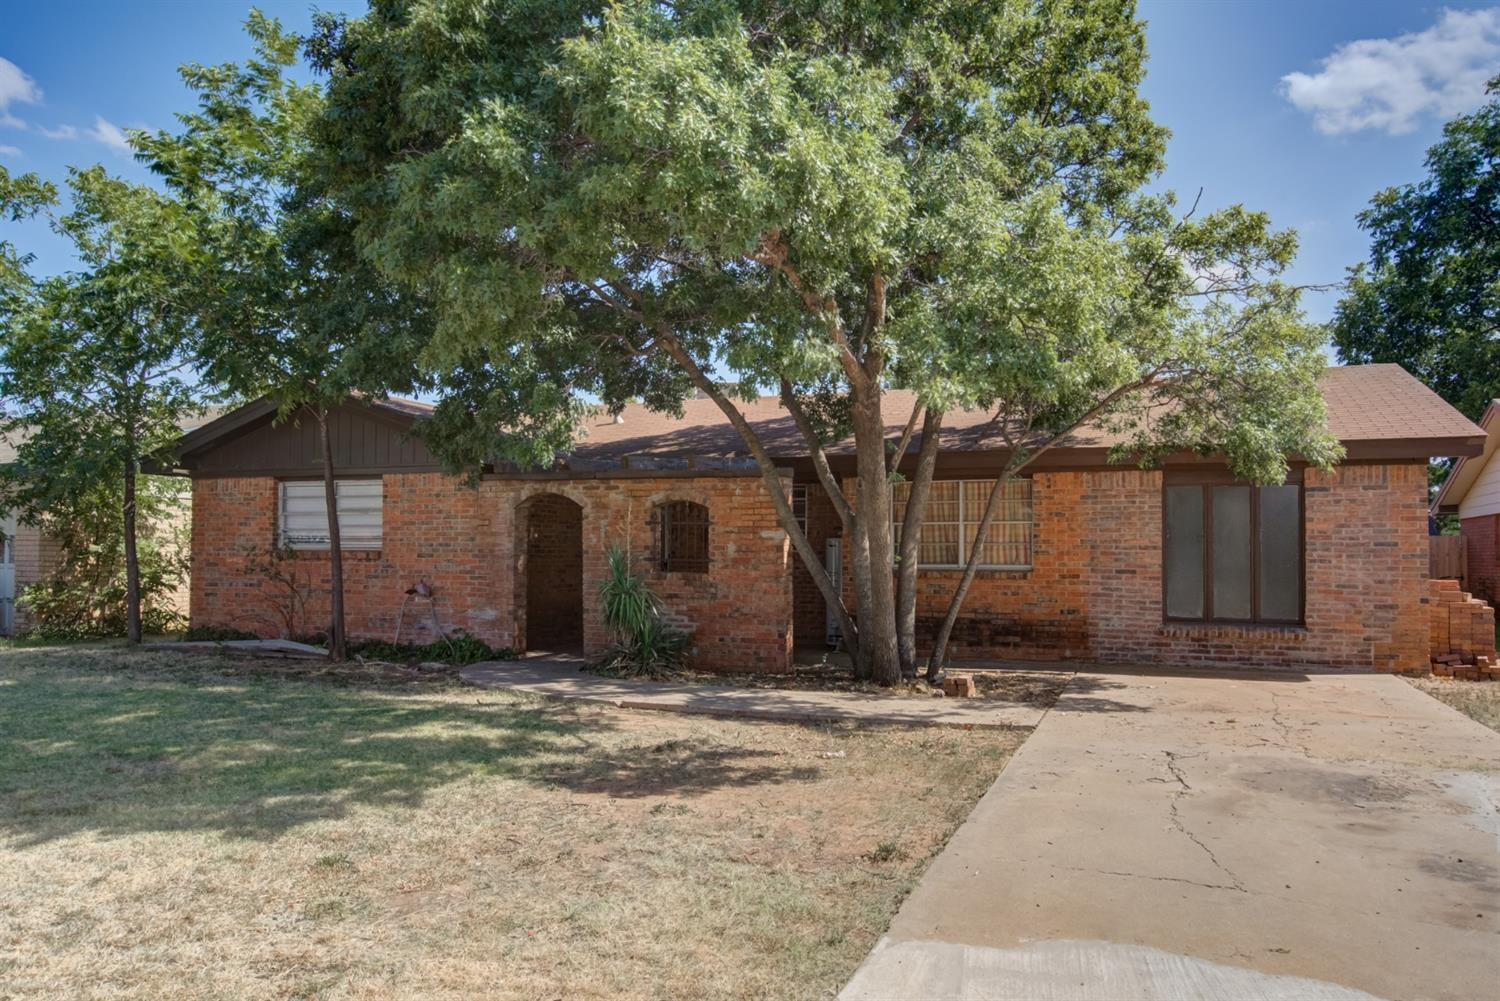 5423 47th Street, Lubbock in Lubbock County, TX 79414 Home for Sale